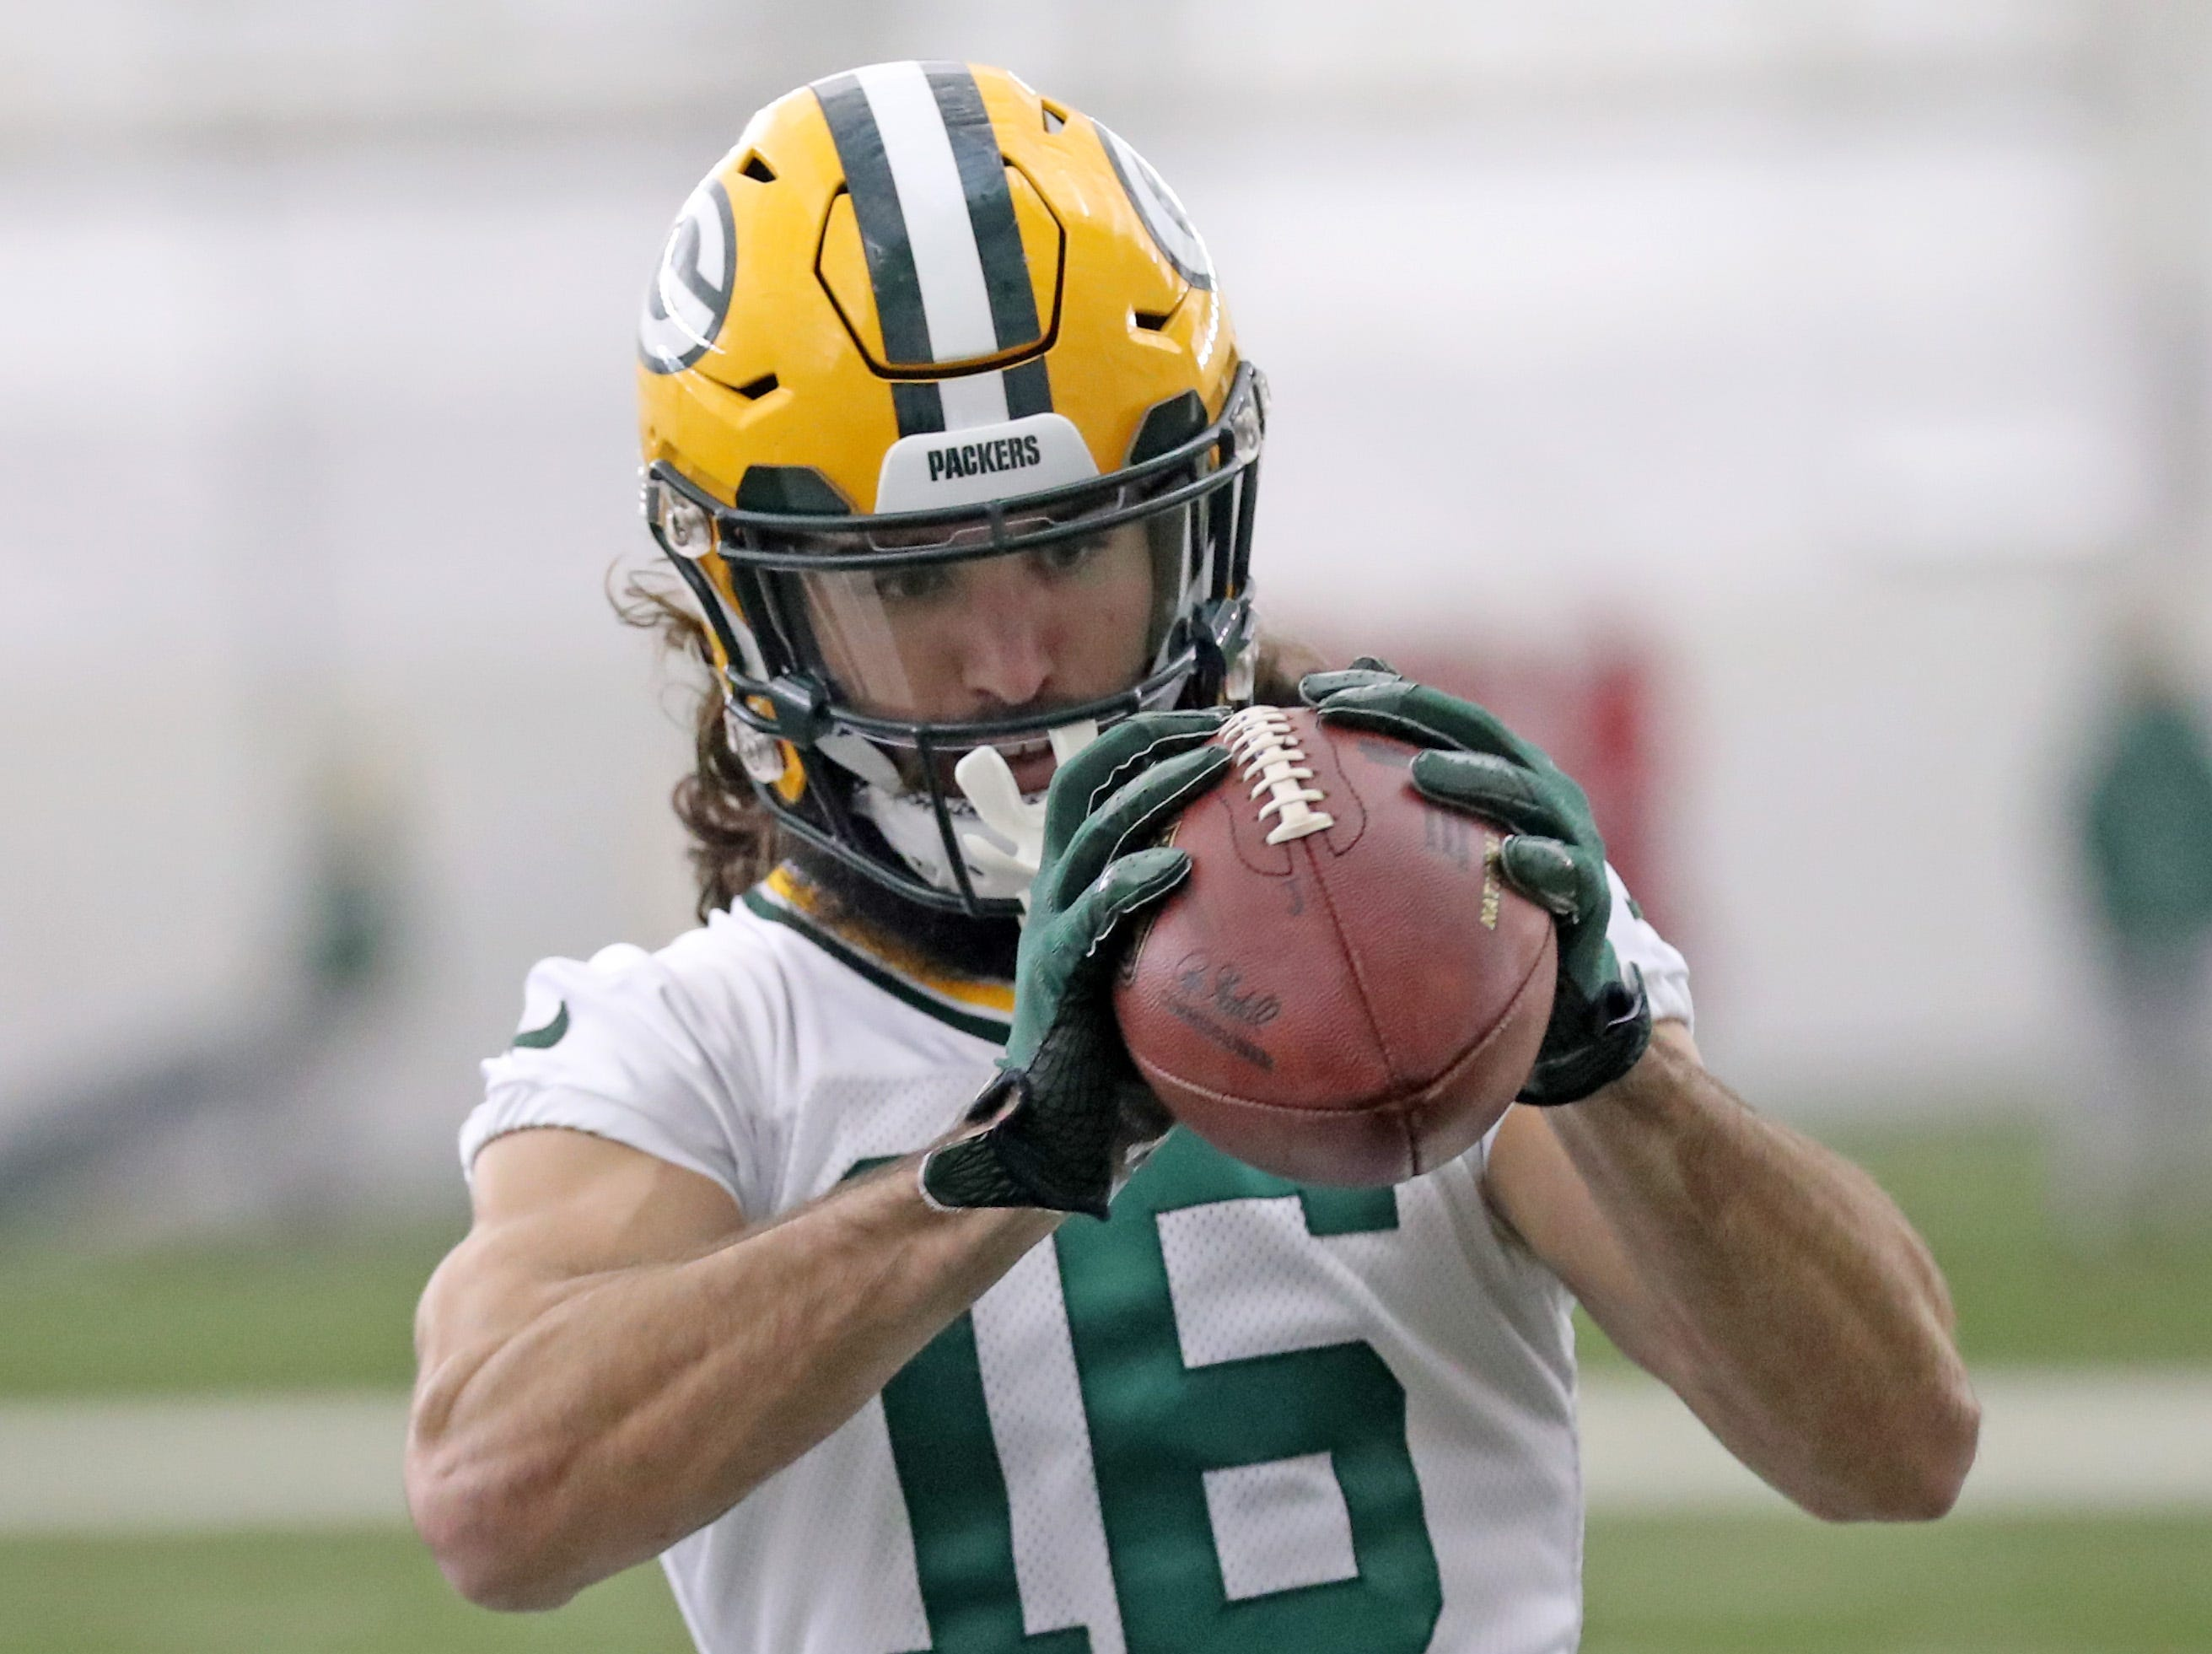 Green Bay Packers wide receiver Jake Kumerow (16) during practice Wednesday, November 21, 2018 inside the Don Hutson Center in Ashwaubenon, Wis.